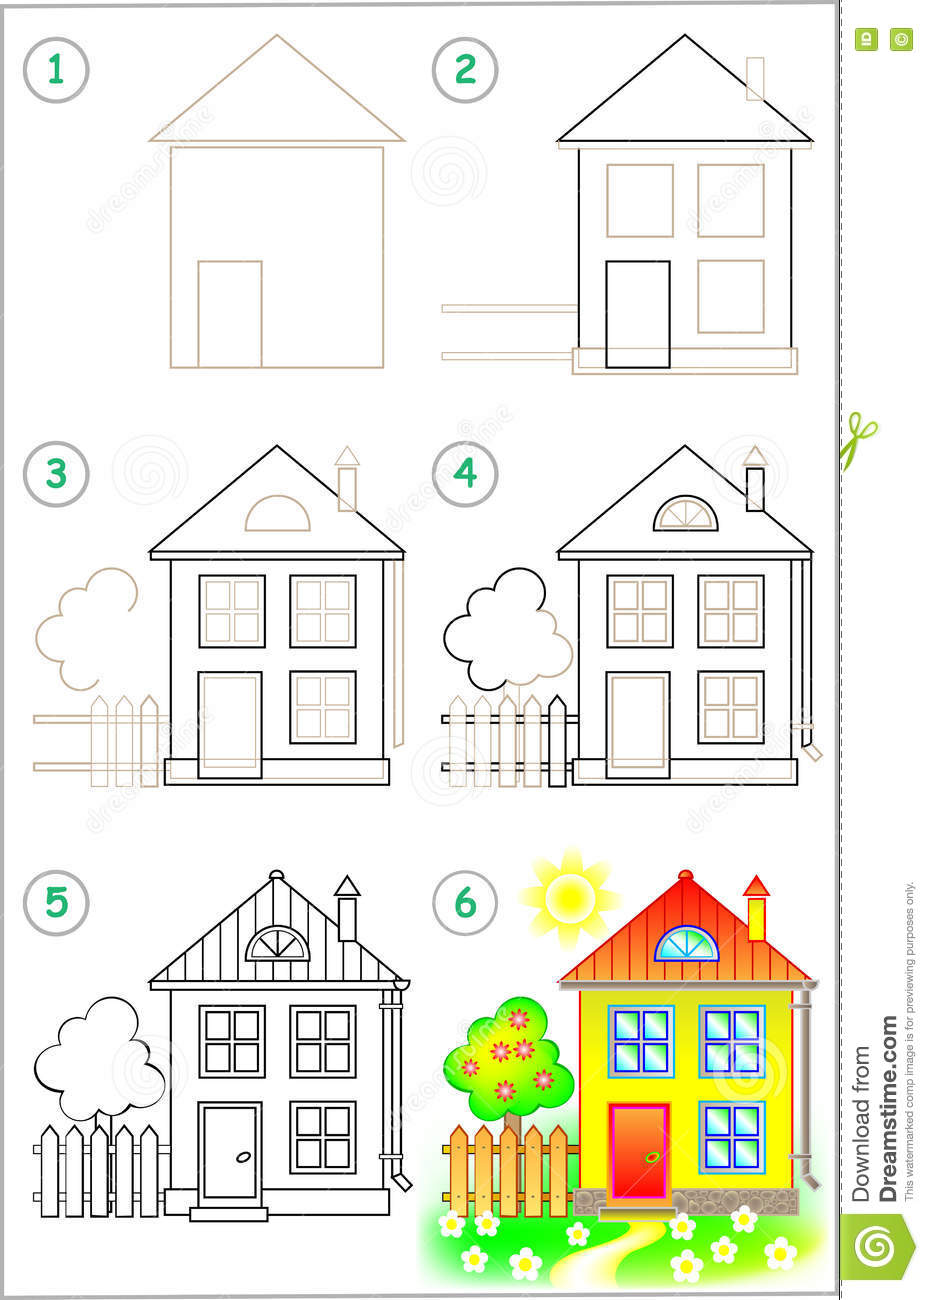 Page shows how to learn step by step to draw a house